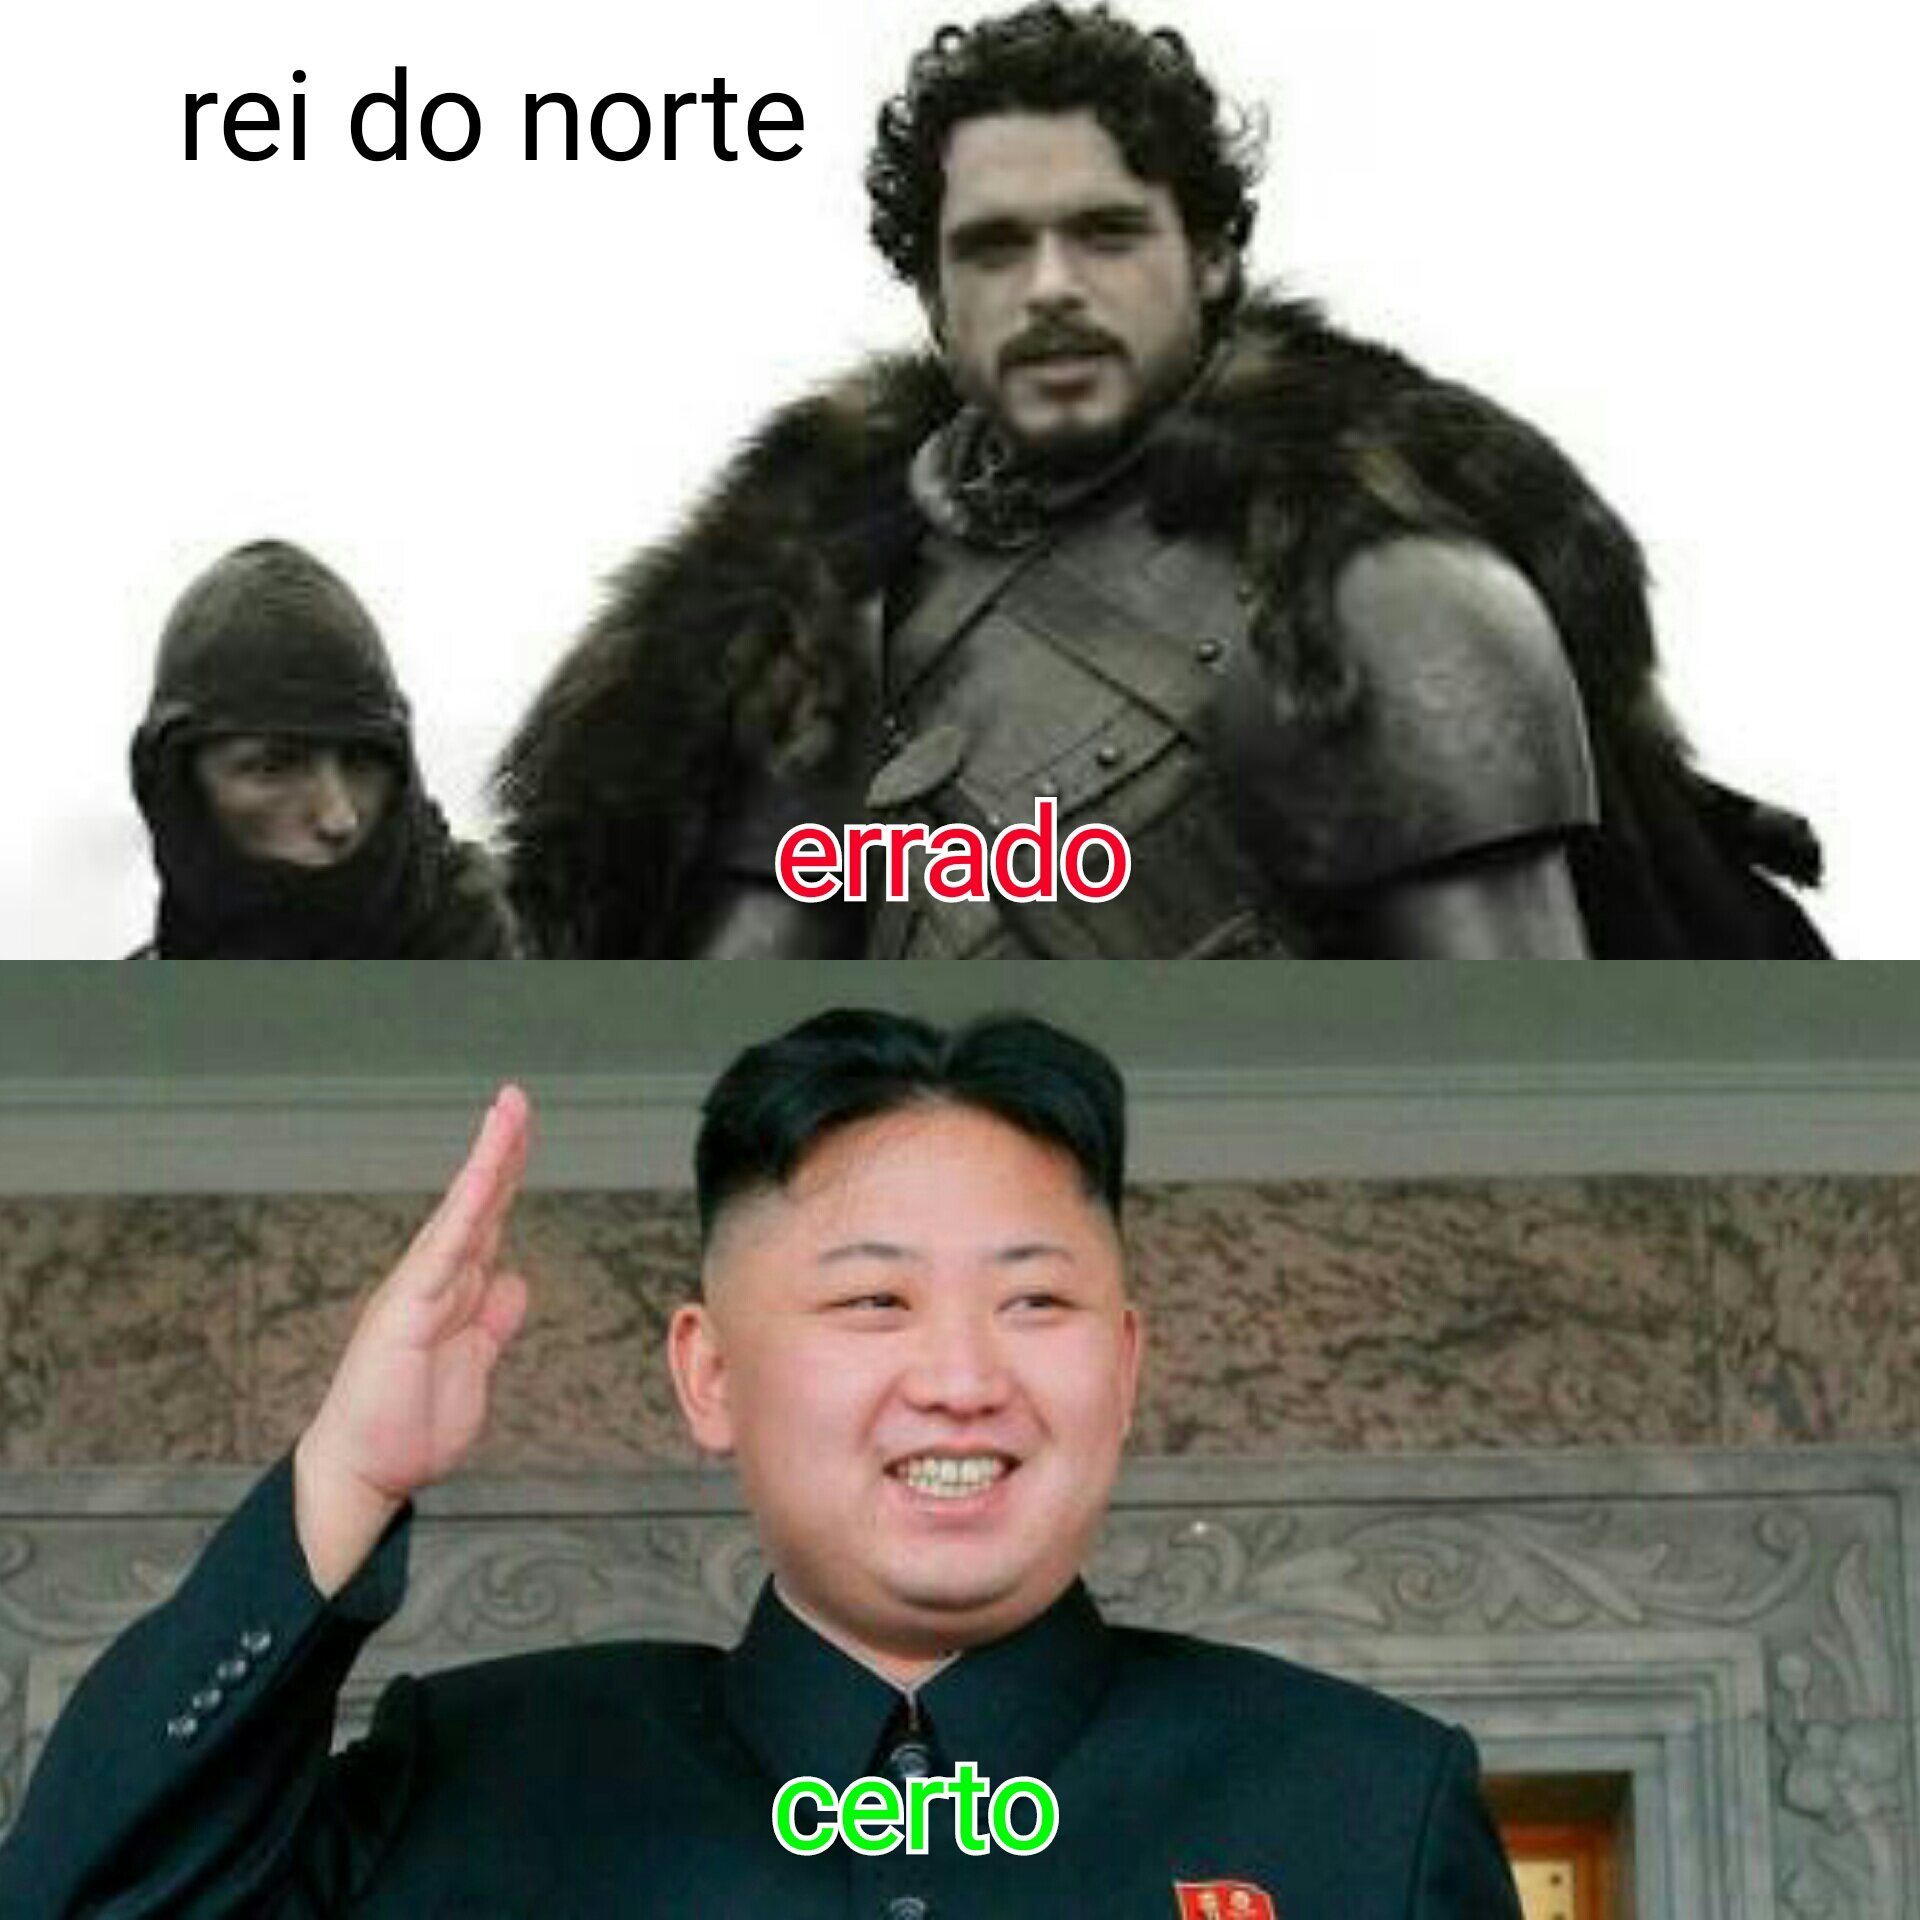 The king of the north - meme